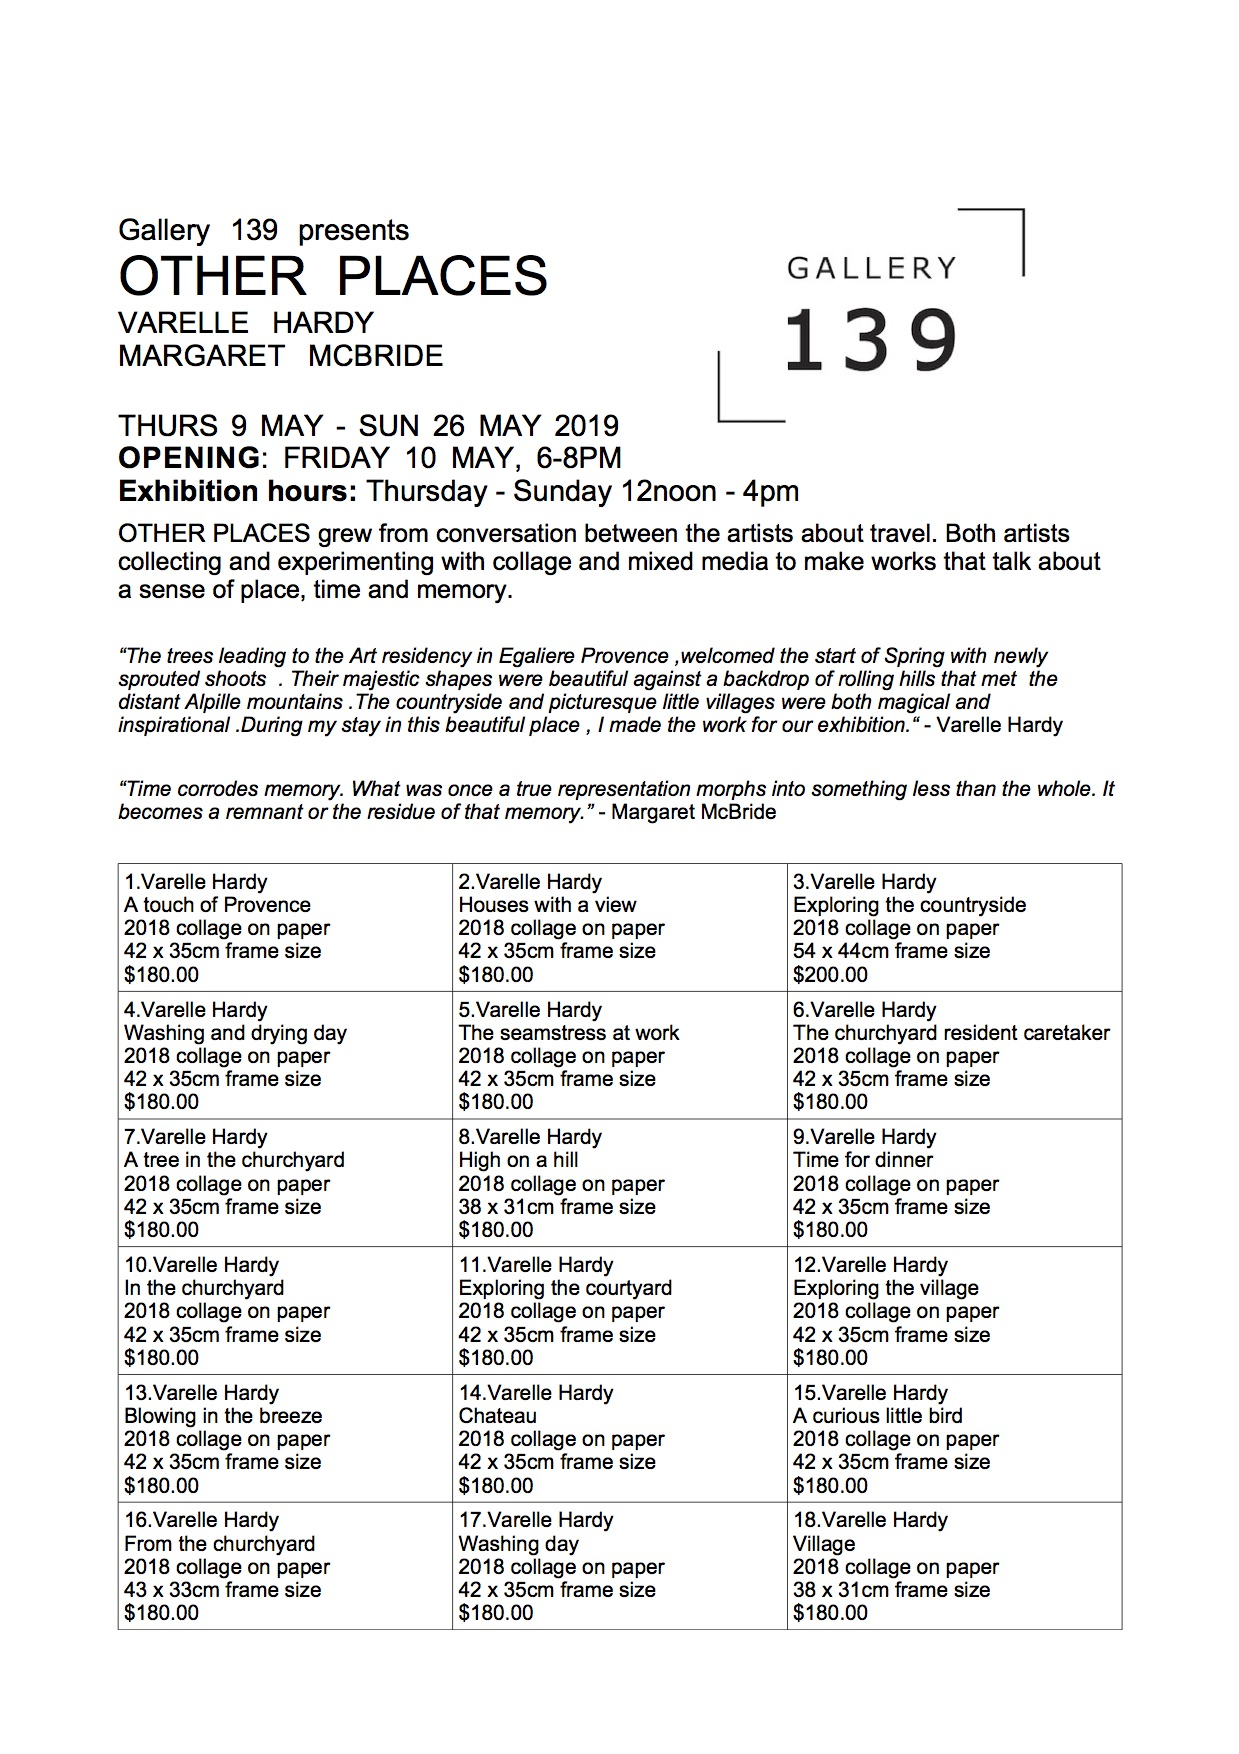 OTHER PLACES catalogue 1.jpg